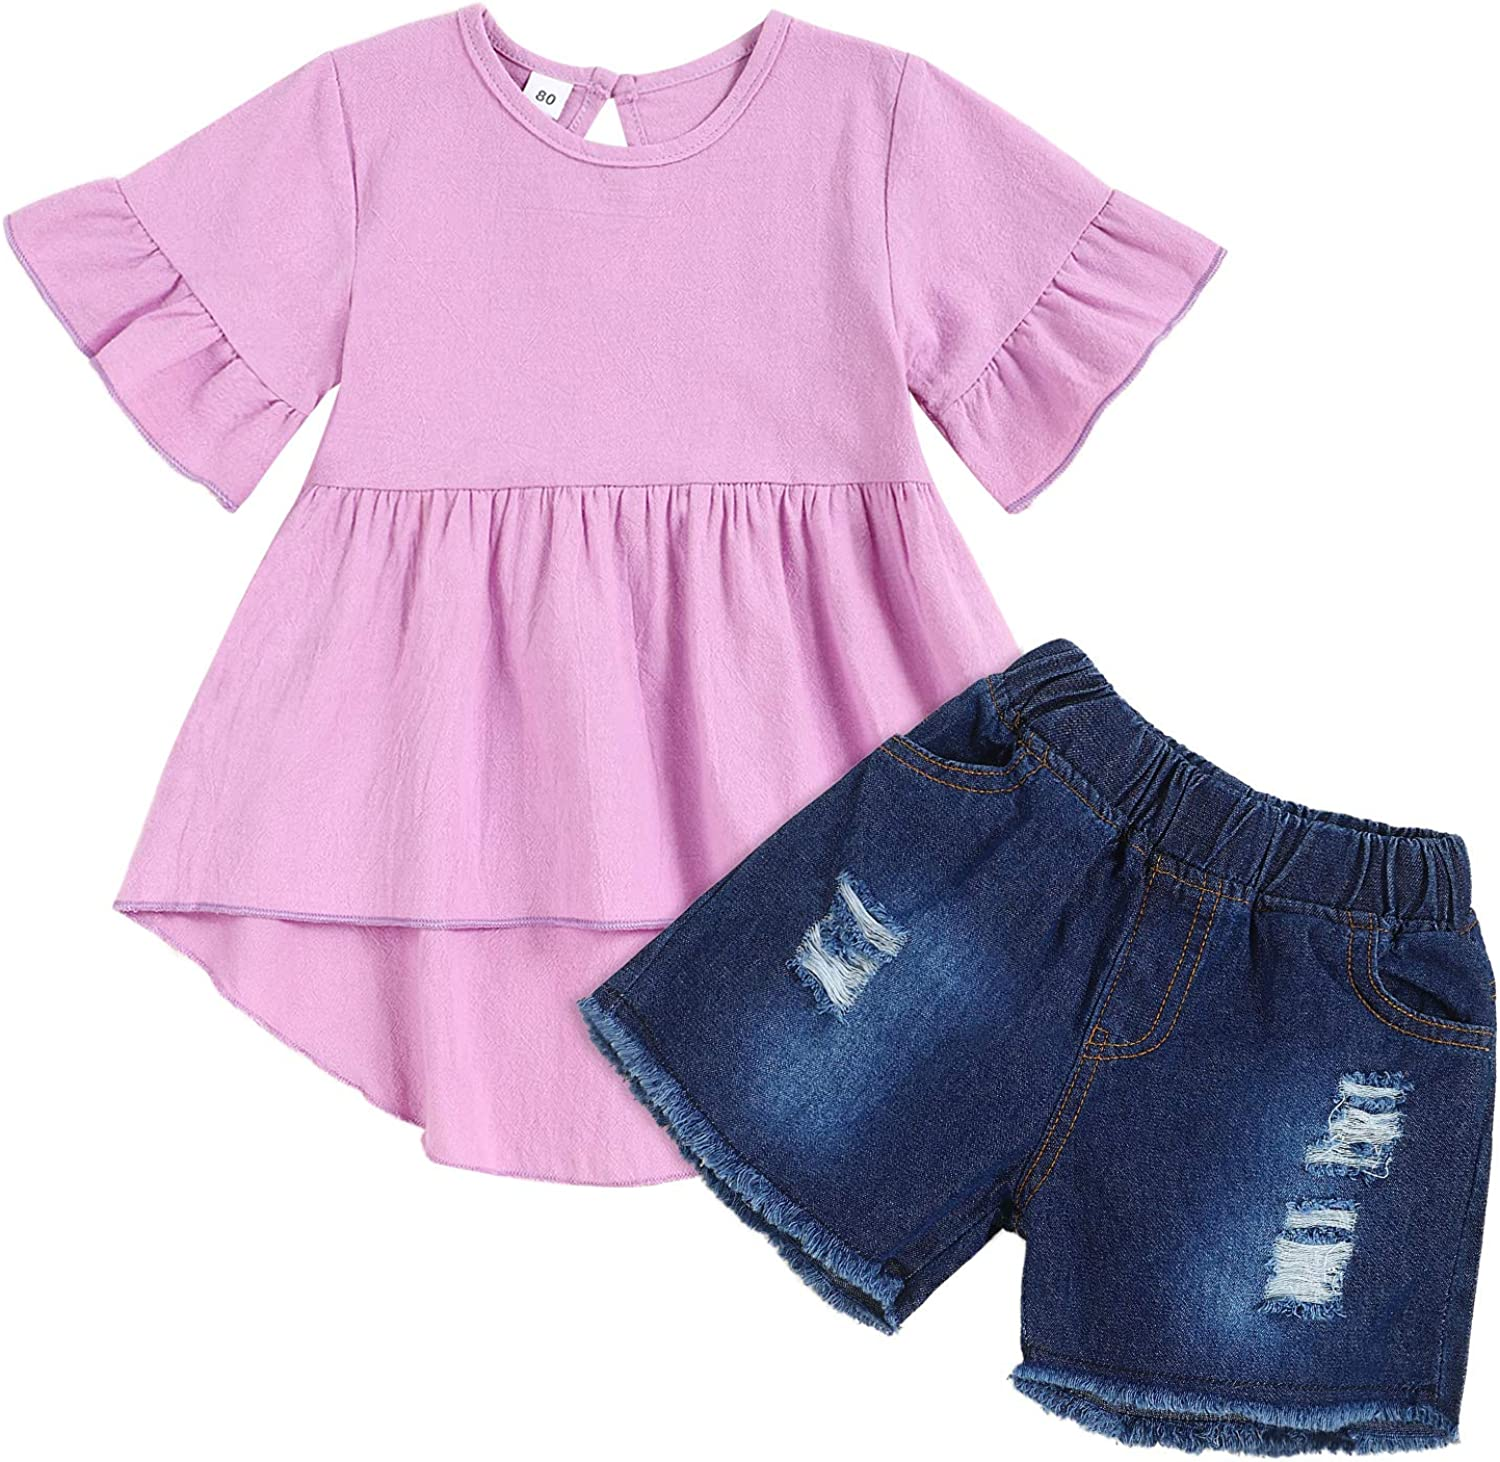 Toddler Baby Girl Clothes Cotton Linen Dress Top Short Ripped Jeans 2pcs Girl Summer Outfit Sets Purple